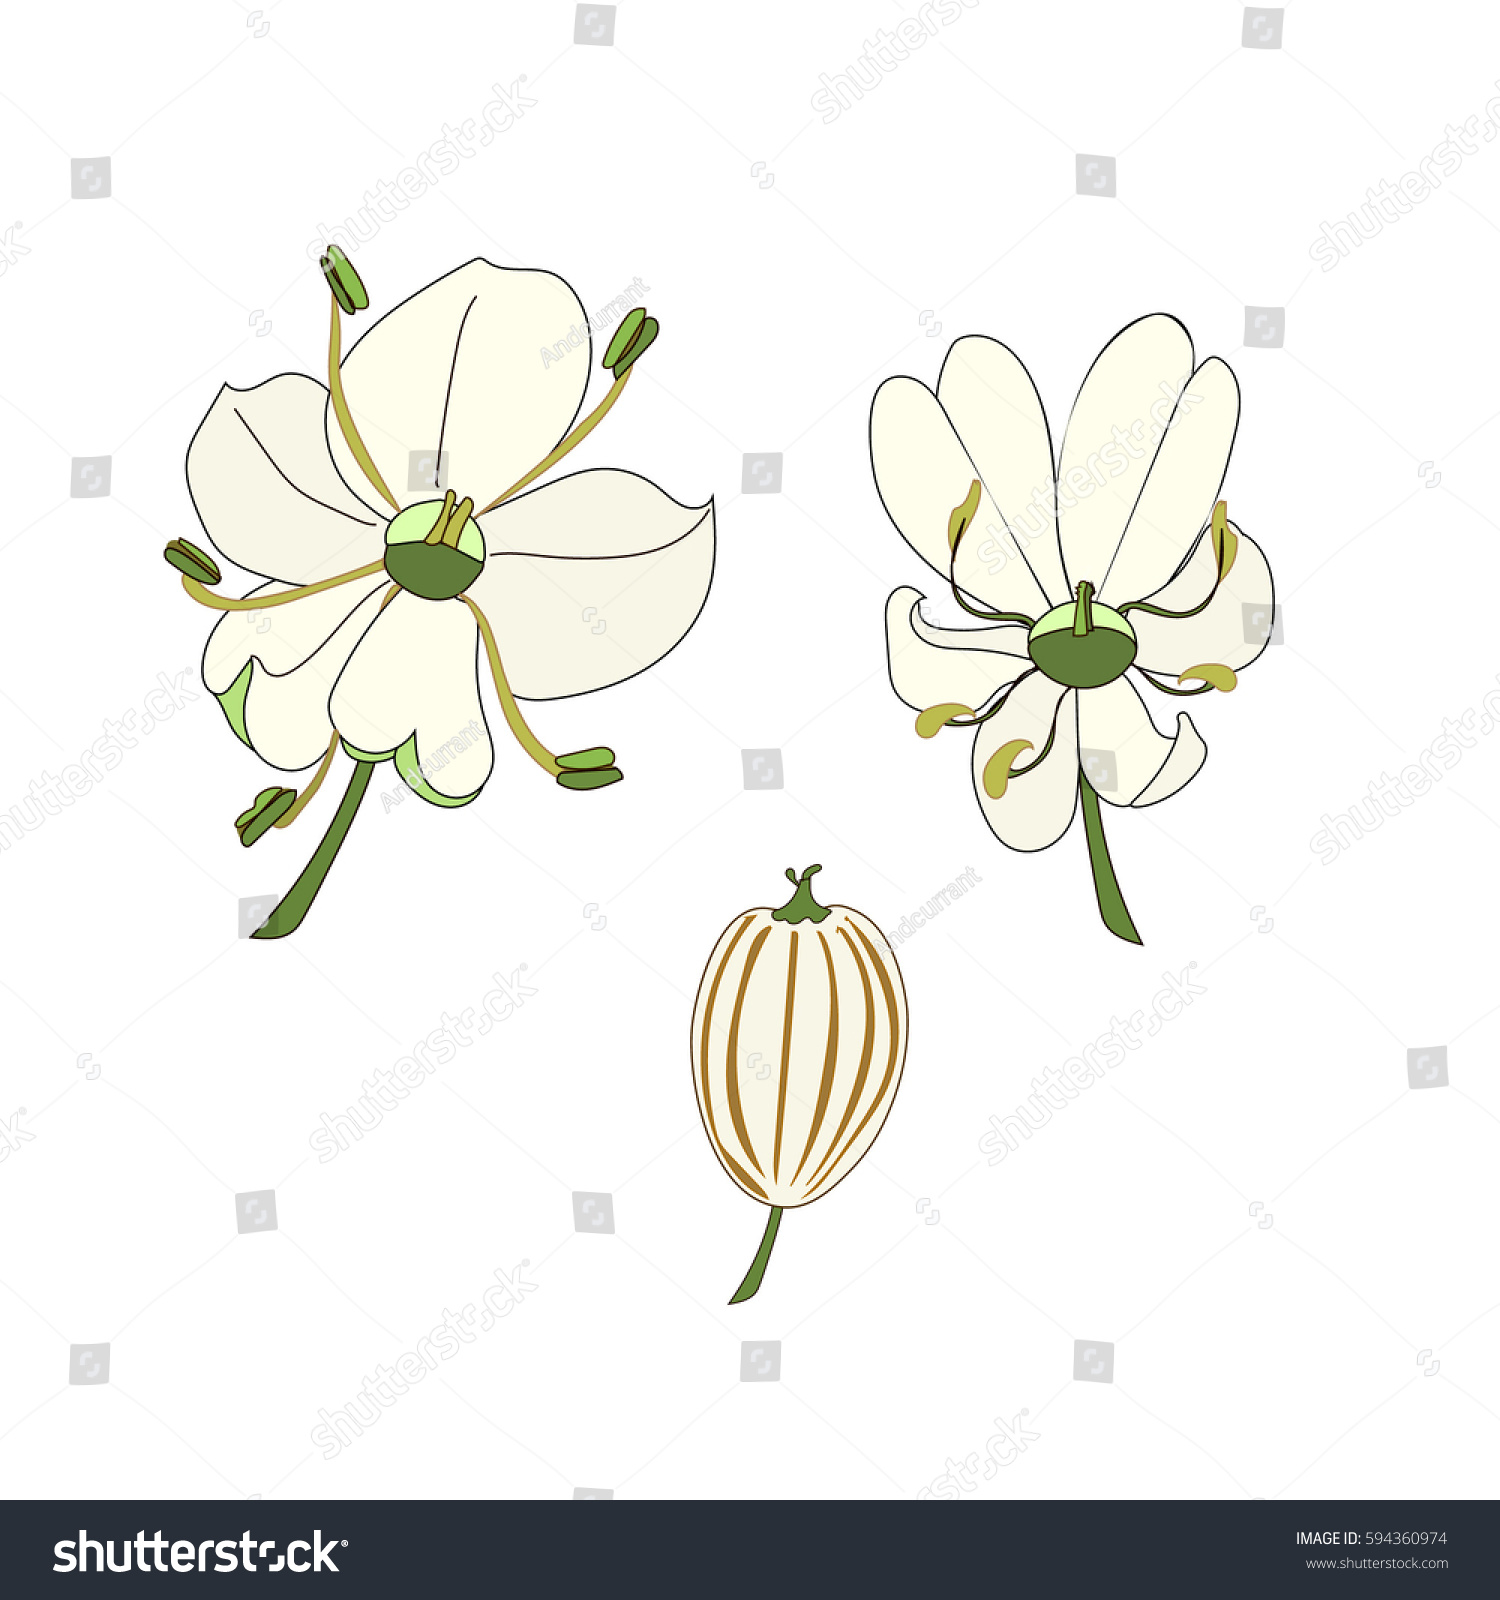 Flowers Anatomy Hogweed Heracleum Vector Hand Stock Vector 594360974 ...